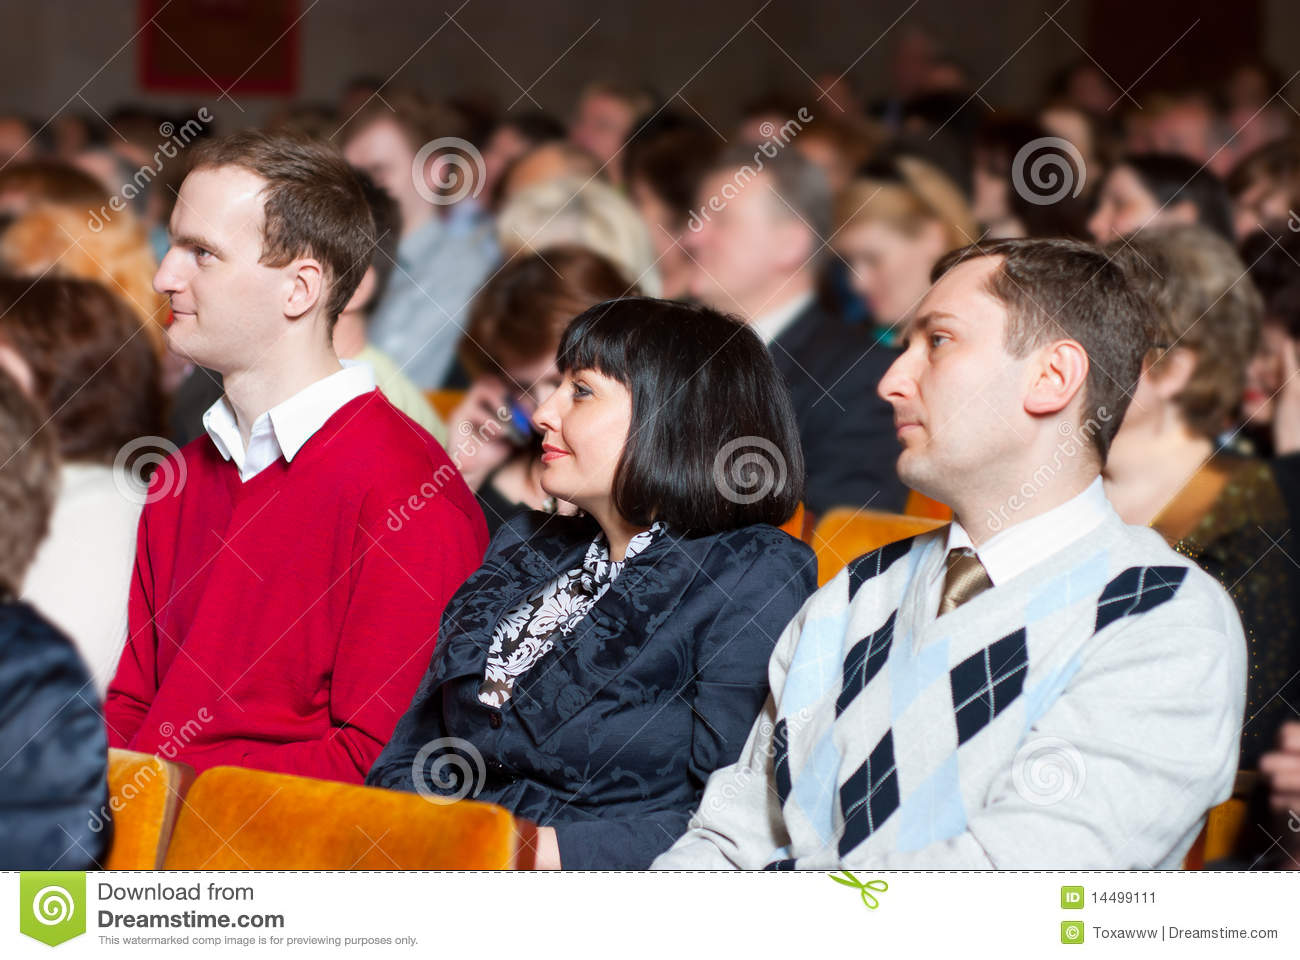 People at the conference